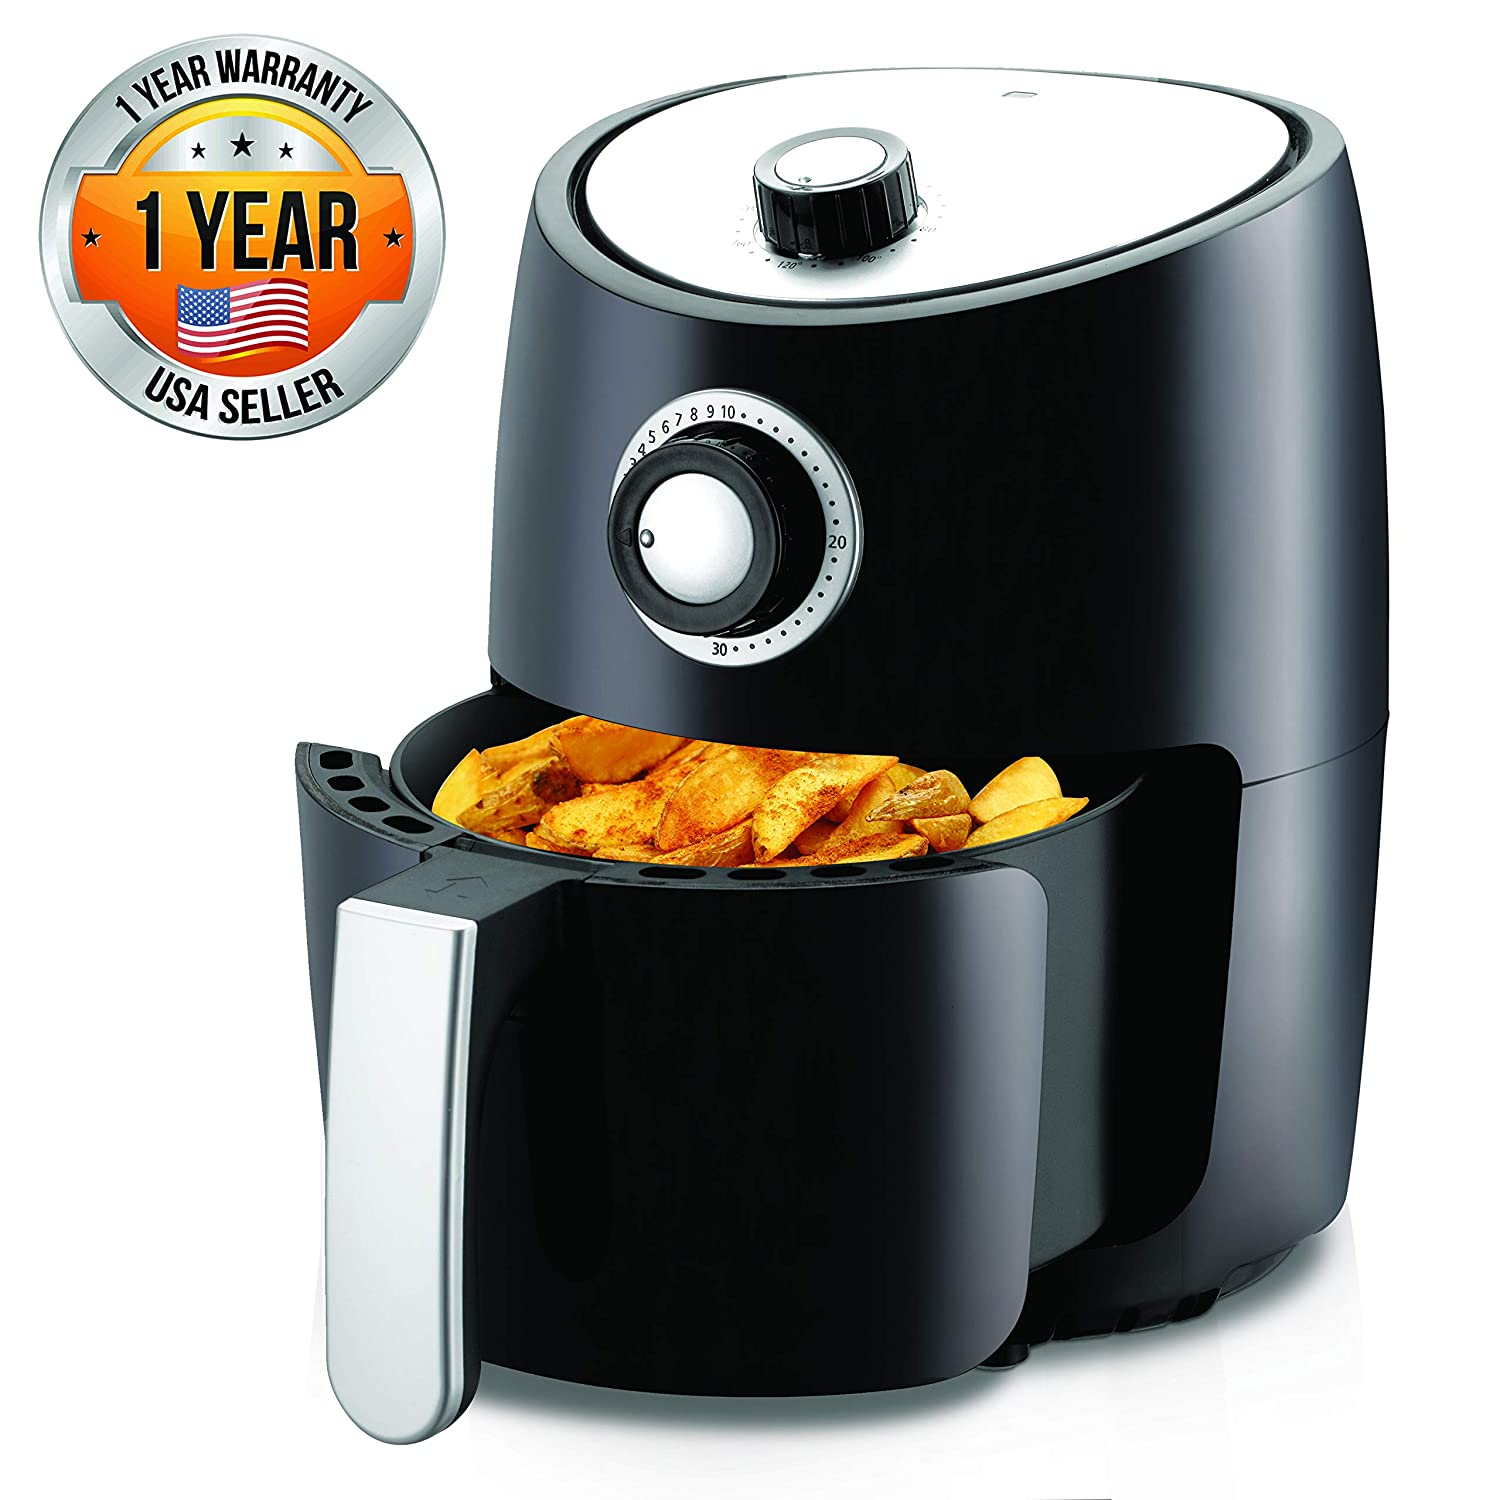 Air Fryer Oven 2 Quart - 1000w Power Oilless Dry Fryer Machine Large Capacity Family Size Air Fryer With Basket - Removable Deep Non-stick Teflon Fry Basket, Roasting Plate - Nutrichef PKAIRFR18